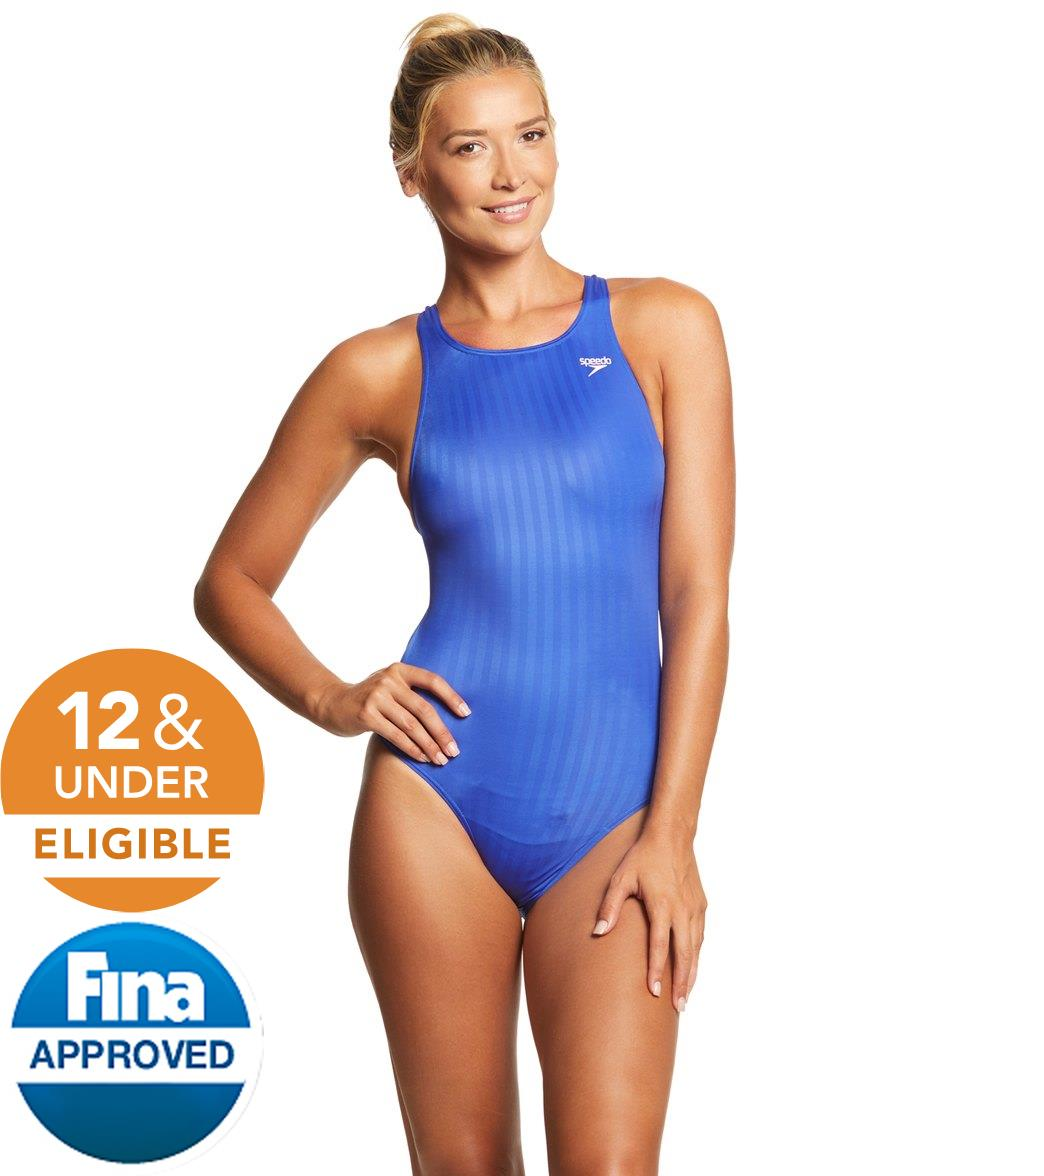 6126da1b2 Speedo Aquablade Female Recordbreaker Tech Suit Swimsuit at SwimOutlet.com  - Free Shipping